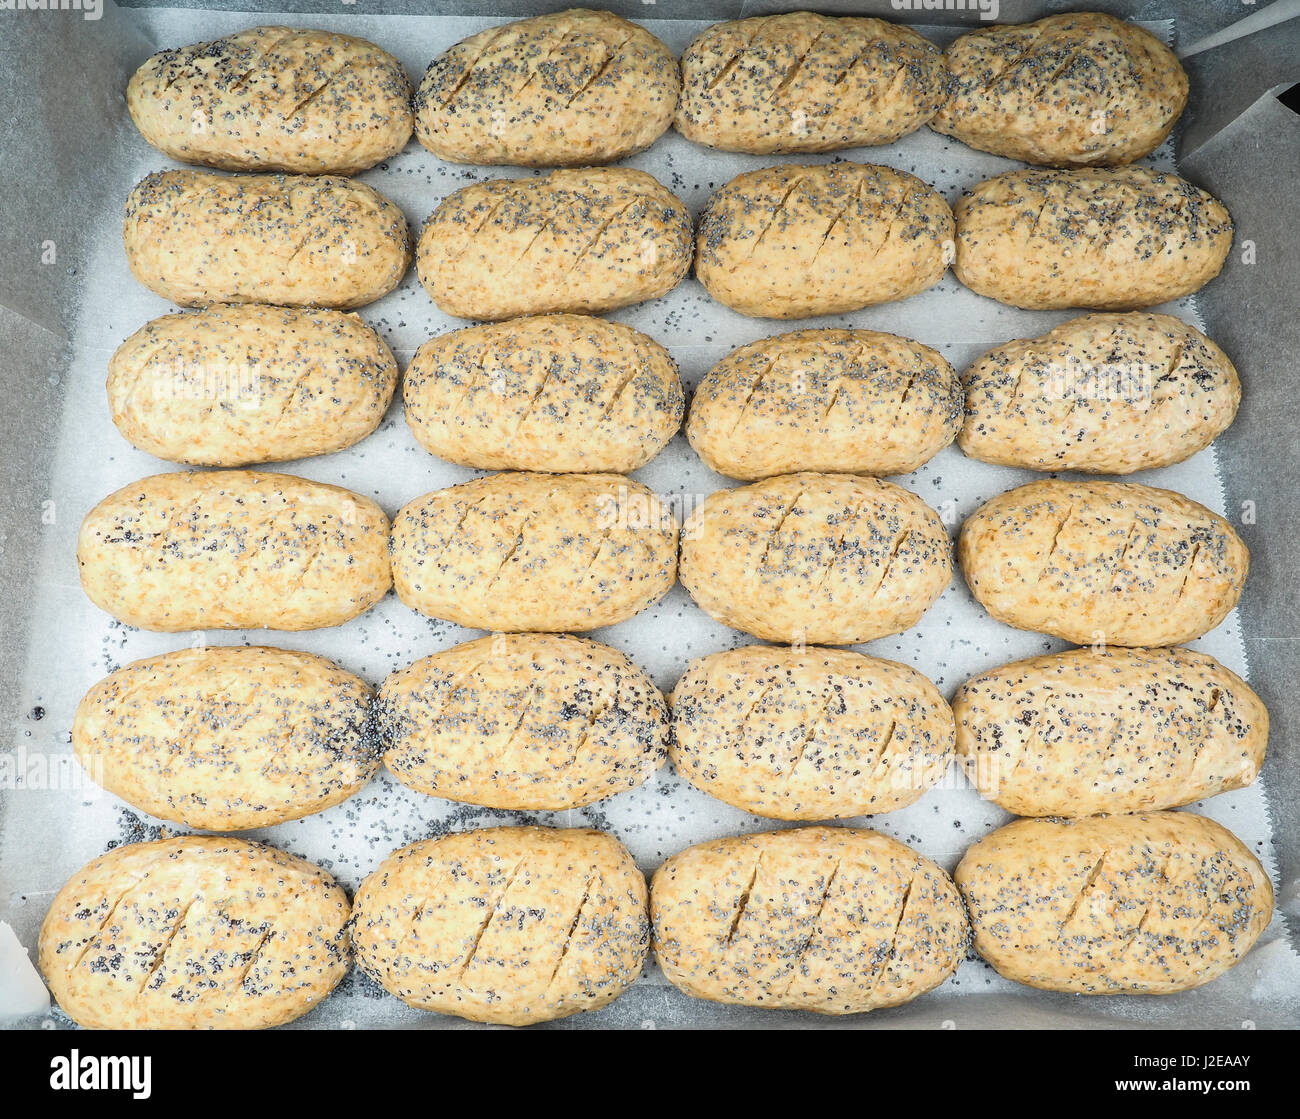 Group of plated whole grain rolls with poppy seeds unbaked on baking paper - Stock Image